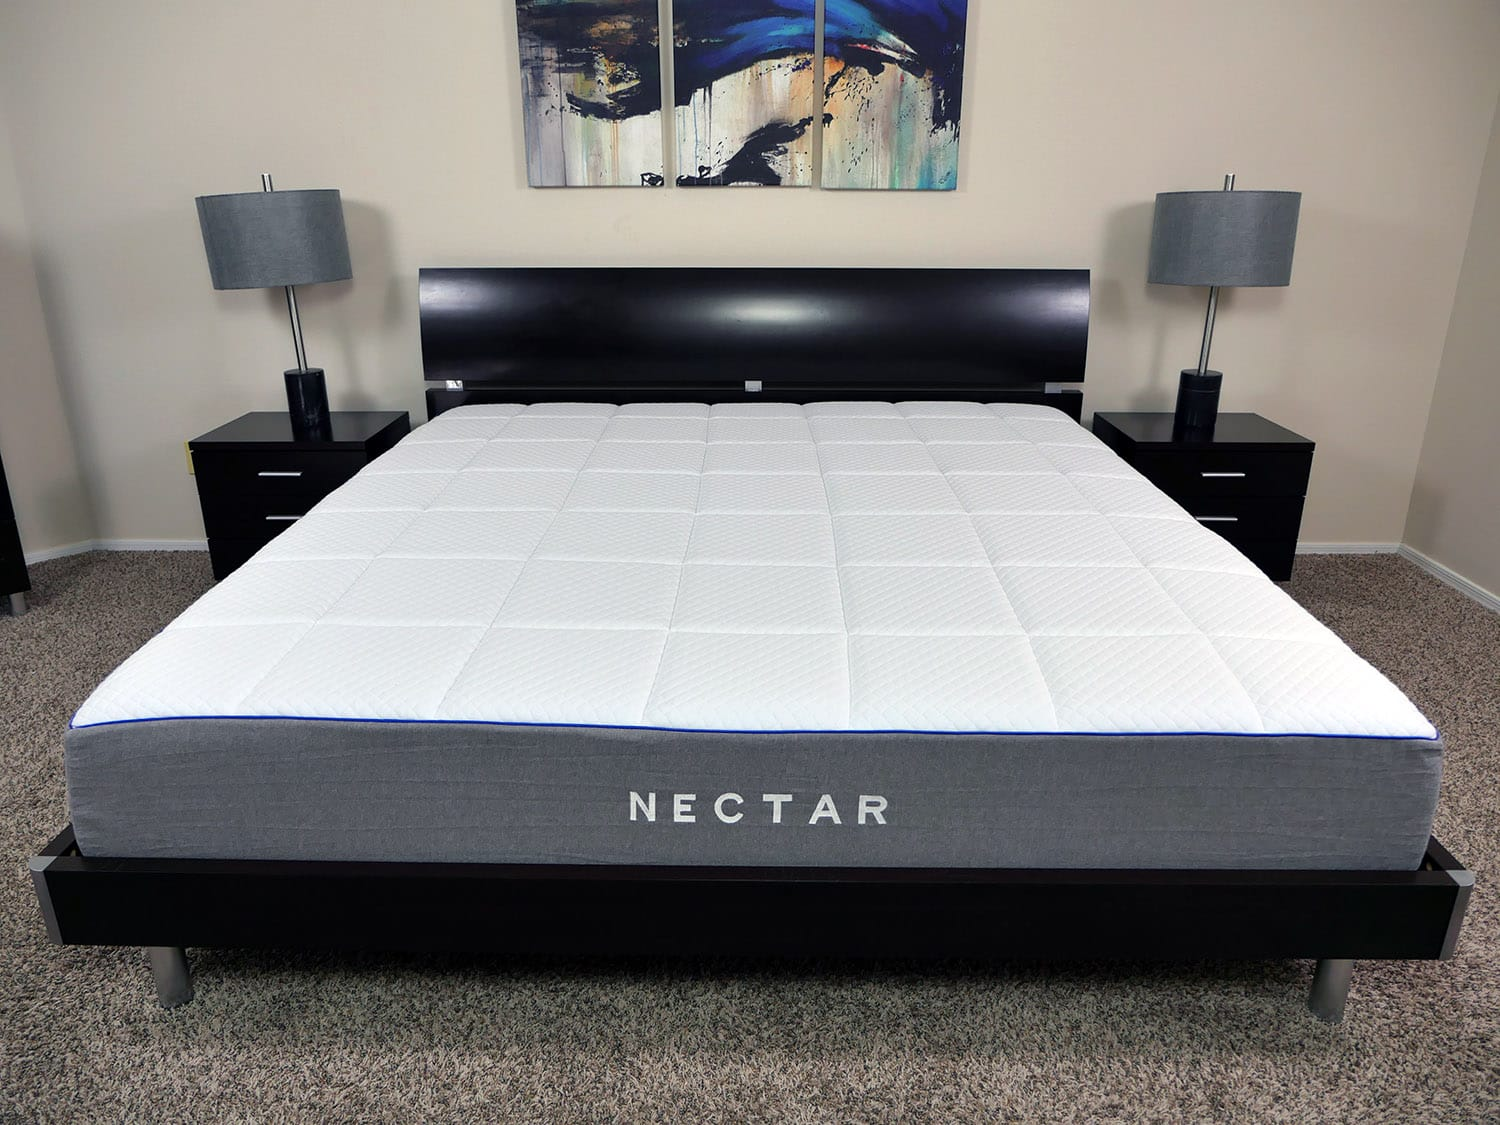 Nectar Mattress Review Sleepopolis